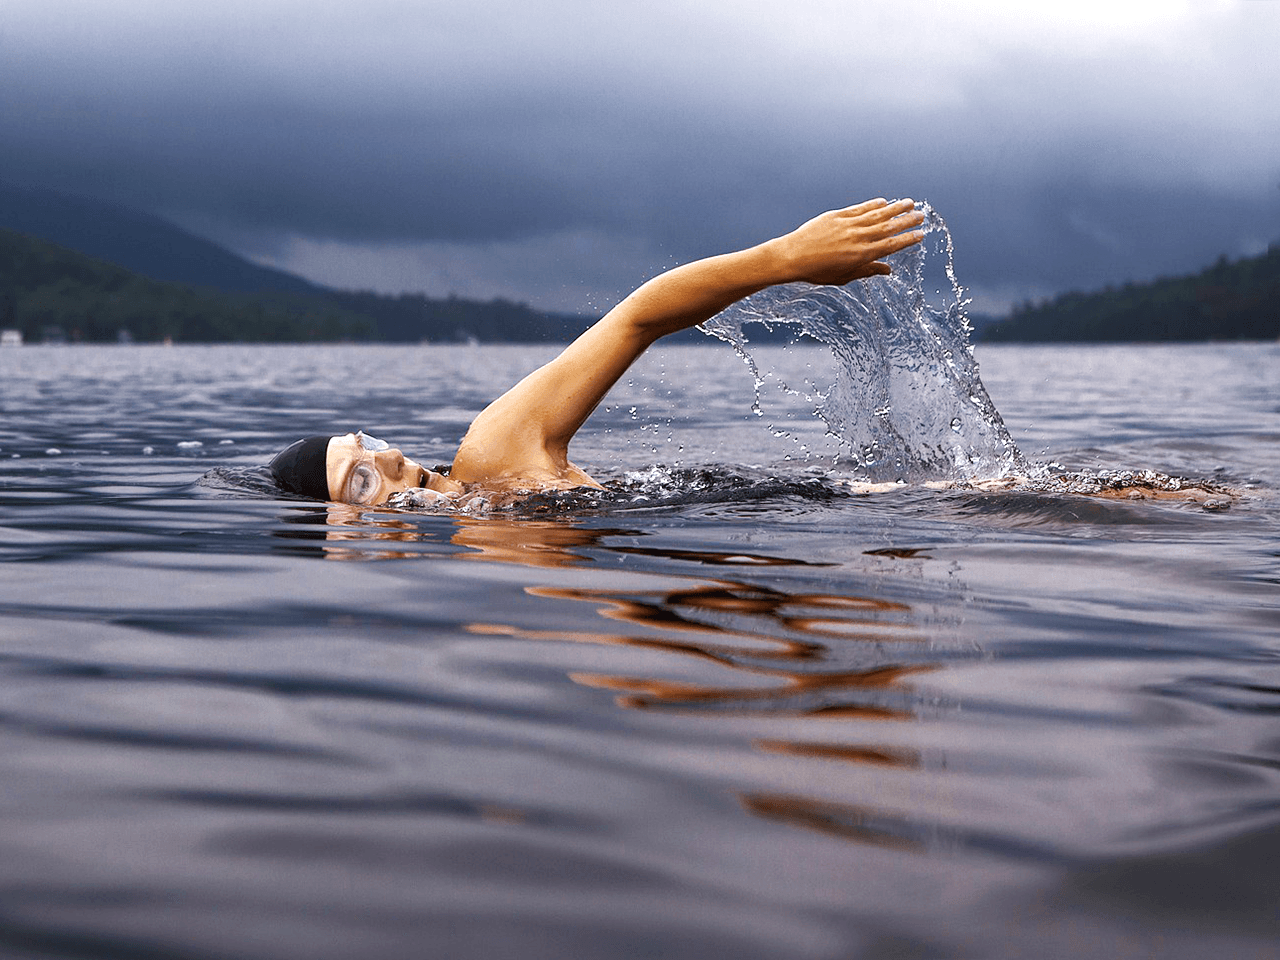 Athlete swimming in a lake